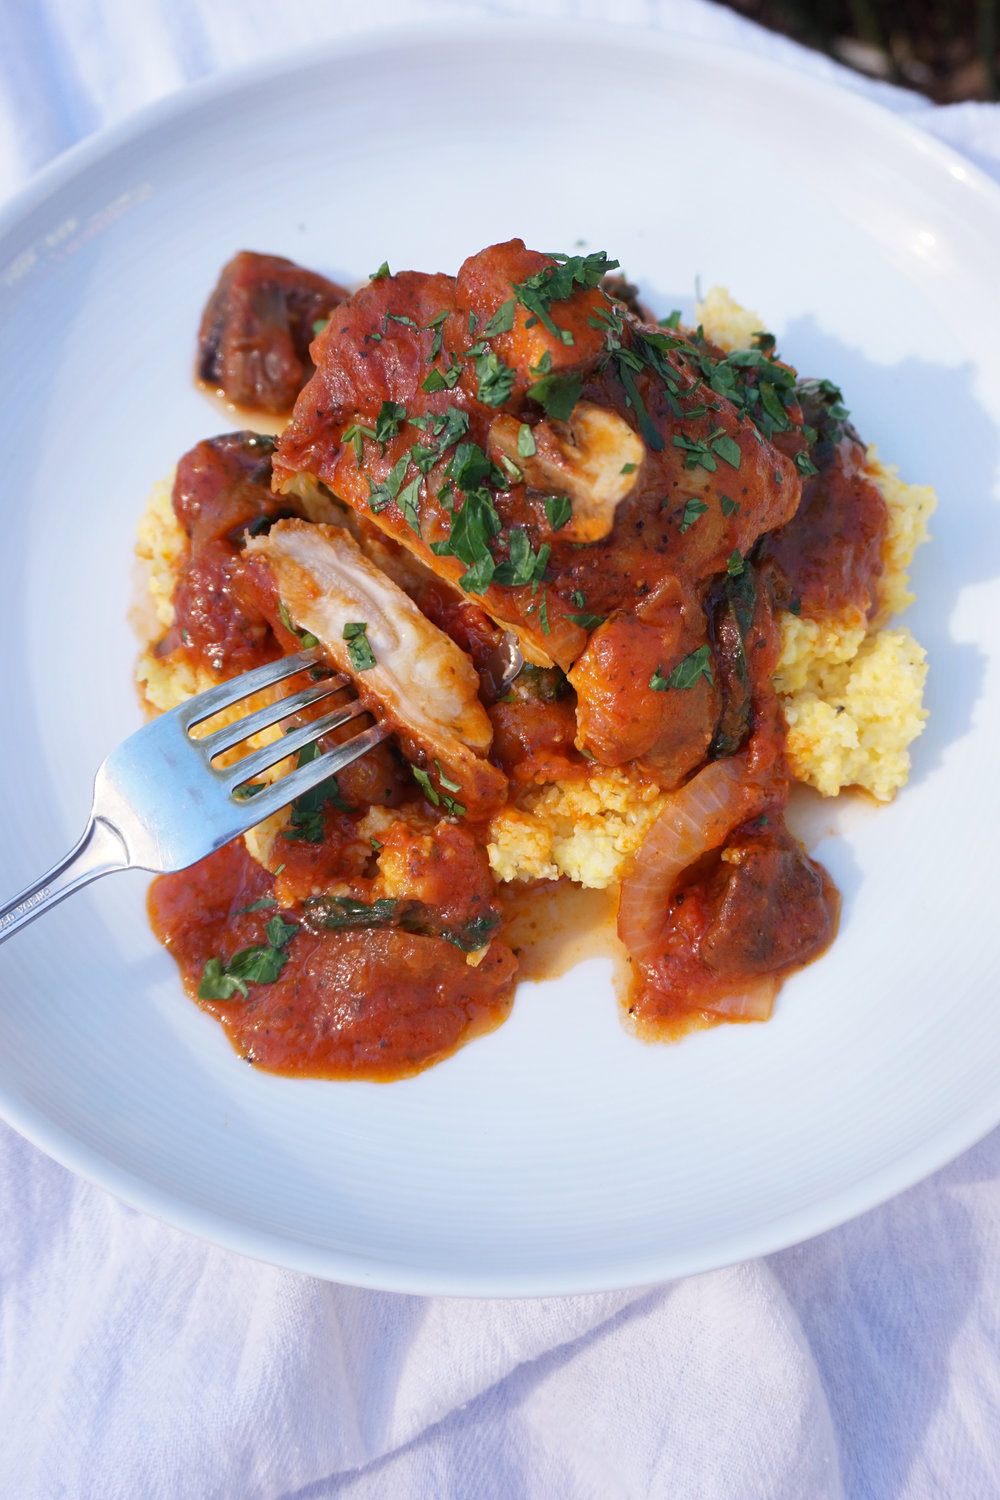 Comforting   Tomato Braised Chicken   and Mushrooms over Polenta   Recipe